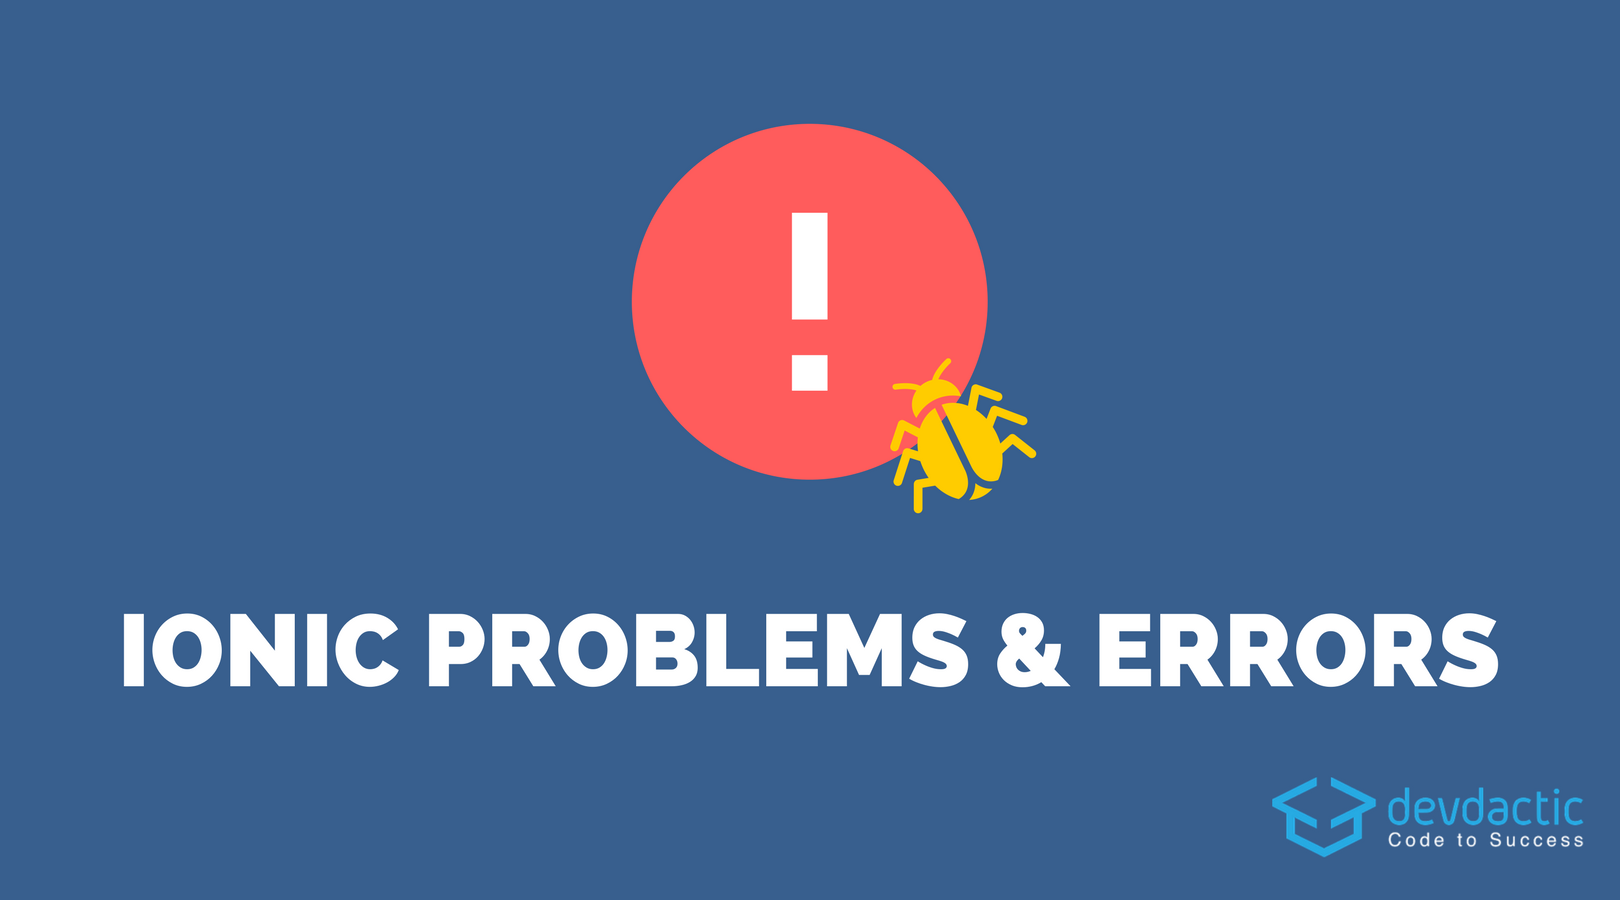 10 Common Ionic Problems & Error Messages (And How to Fix